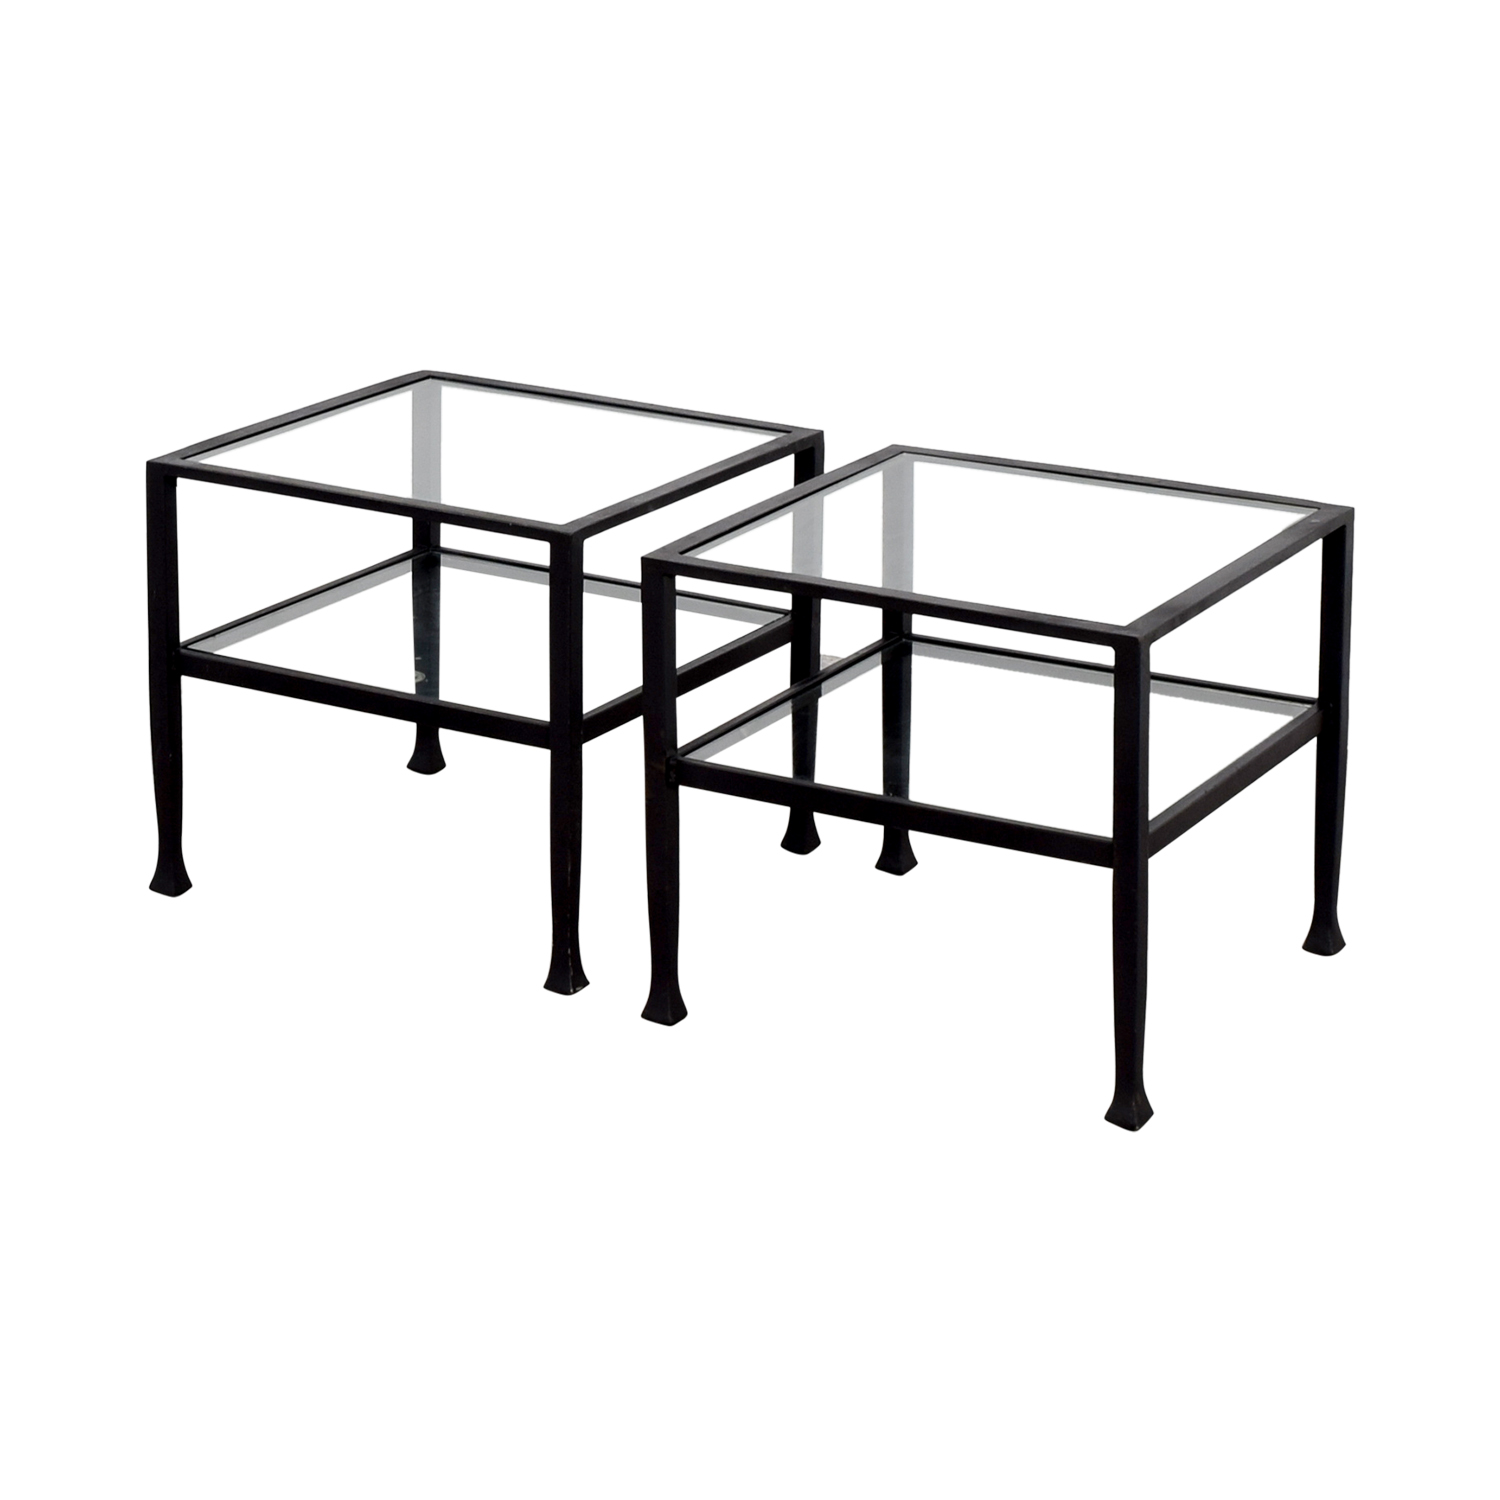 shop Pottery Barn Pottery Barn Glass and Black Frame Side Tables online